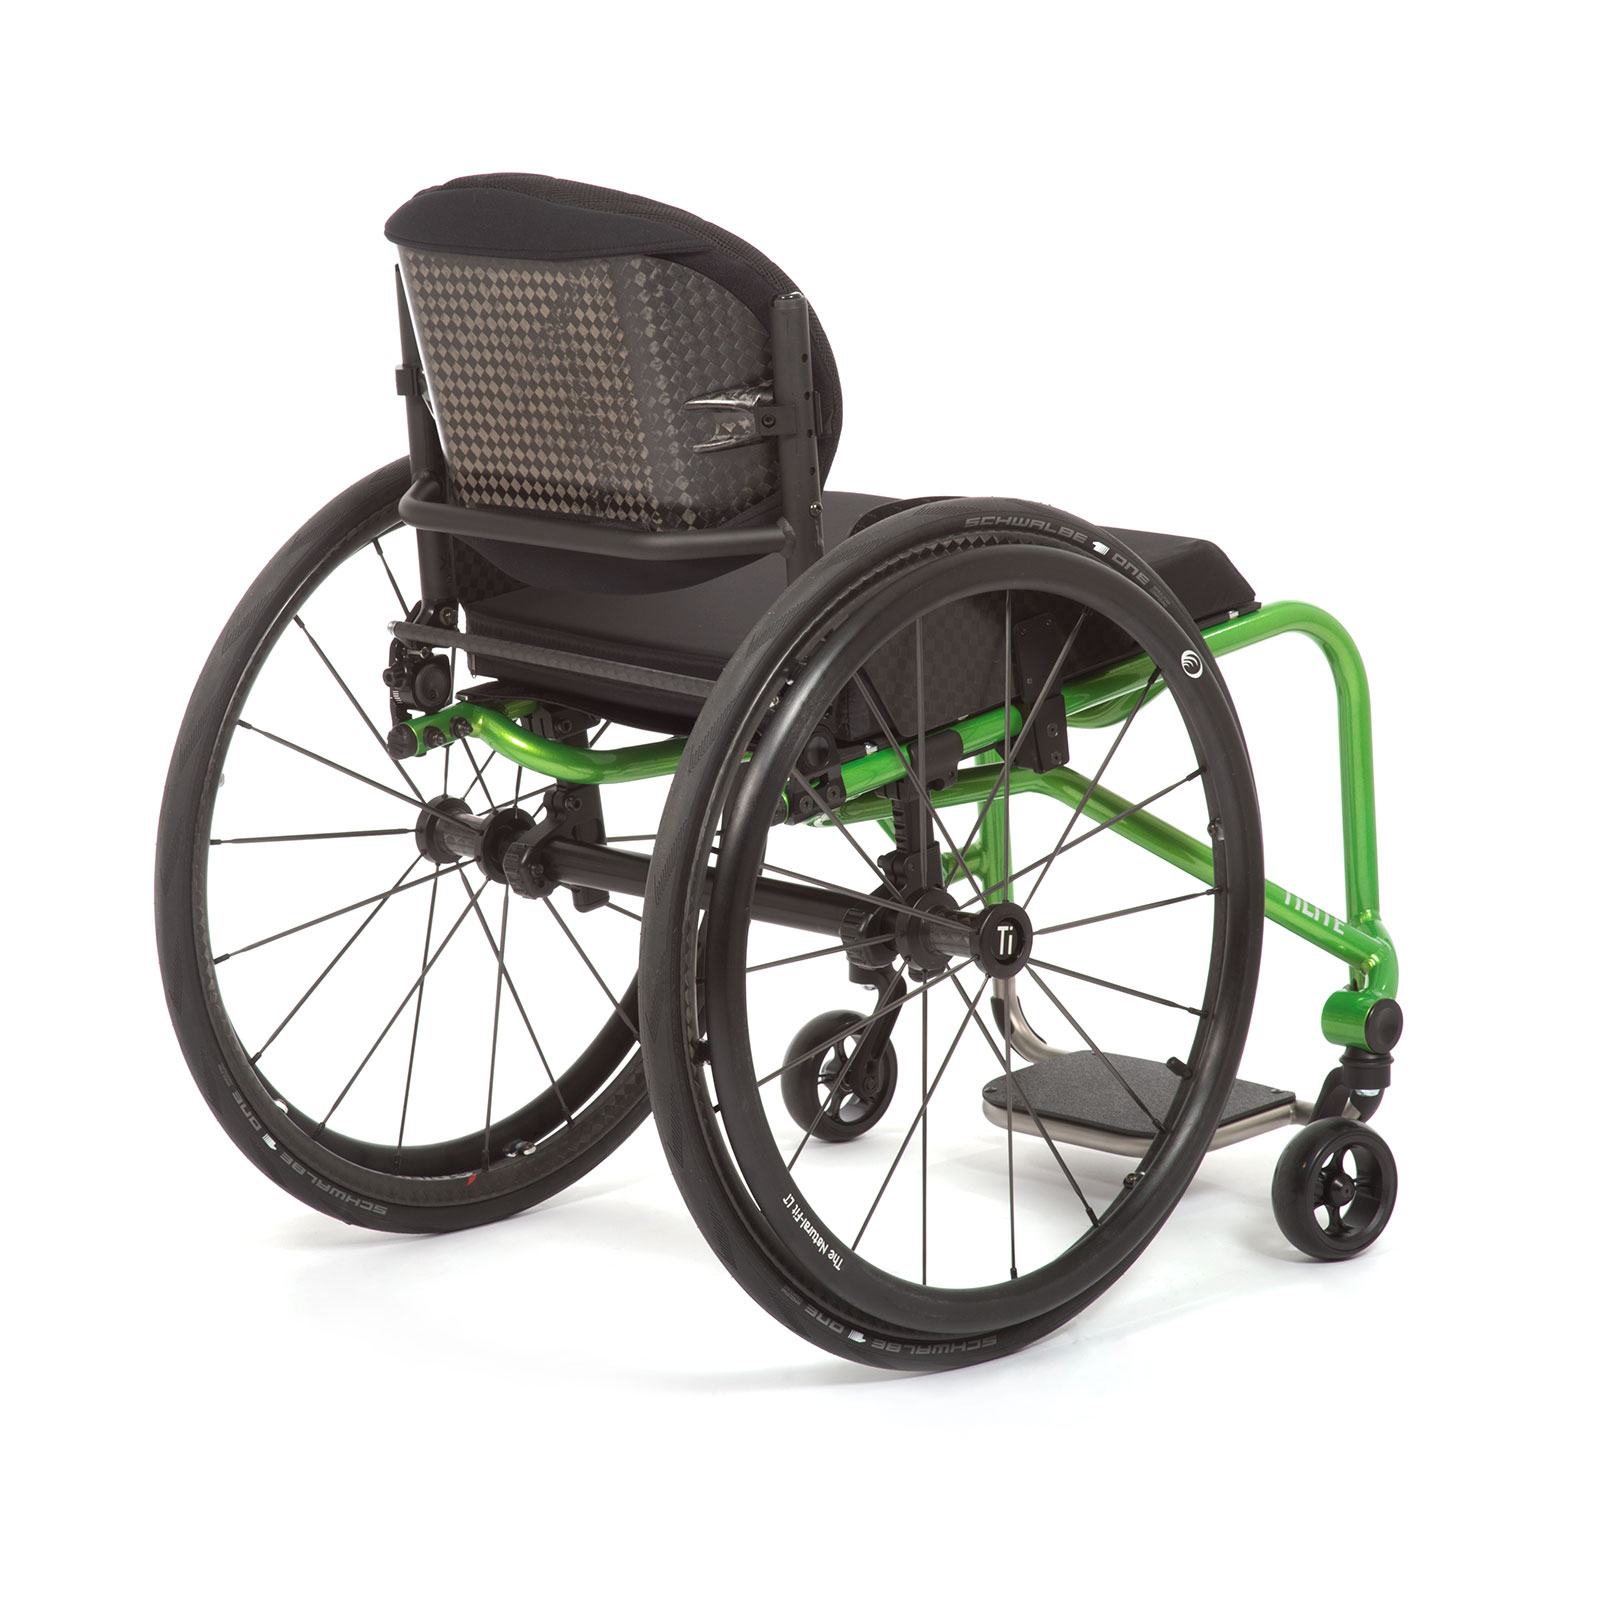 The Back Right acid green of the Wheelchair.